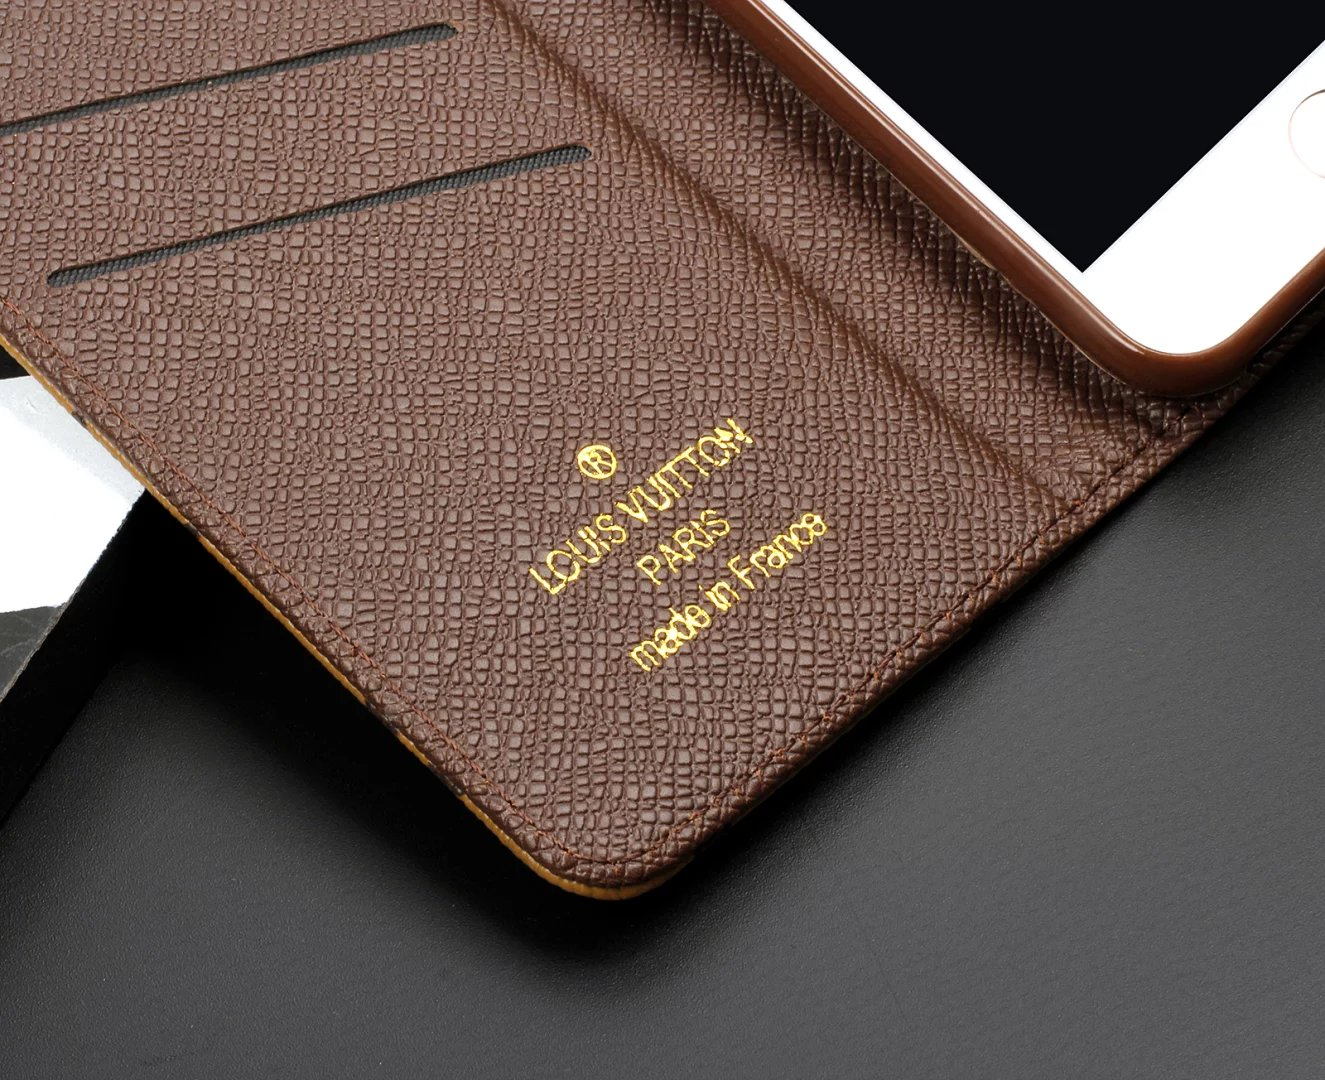 beste iphone hülle hülle für iphone Louis Vuitton iphone6 plus hülle iphone 6 Plus hülle mit displayschutz iphone 6 Plus was6rdichte schutzhülle iphone 6 Plus rosa iphone 6 Plus hülle samsung handy hüllen ledertasche iphone 6 Plus